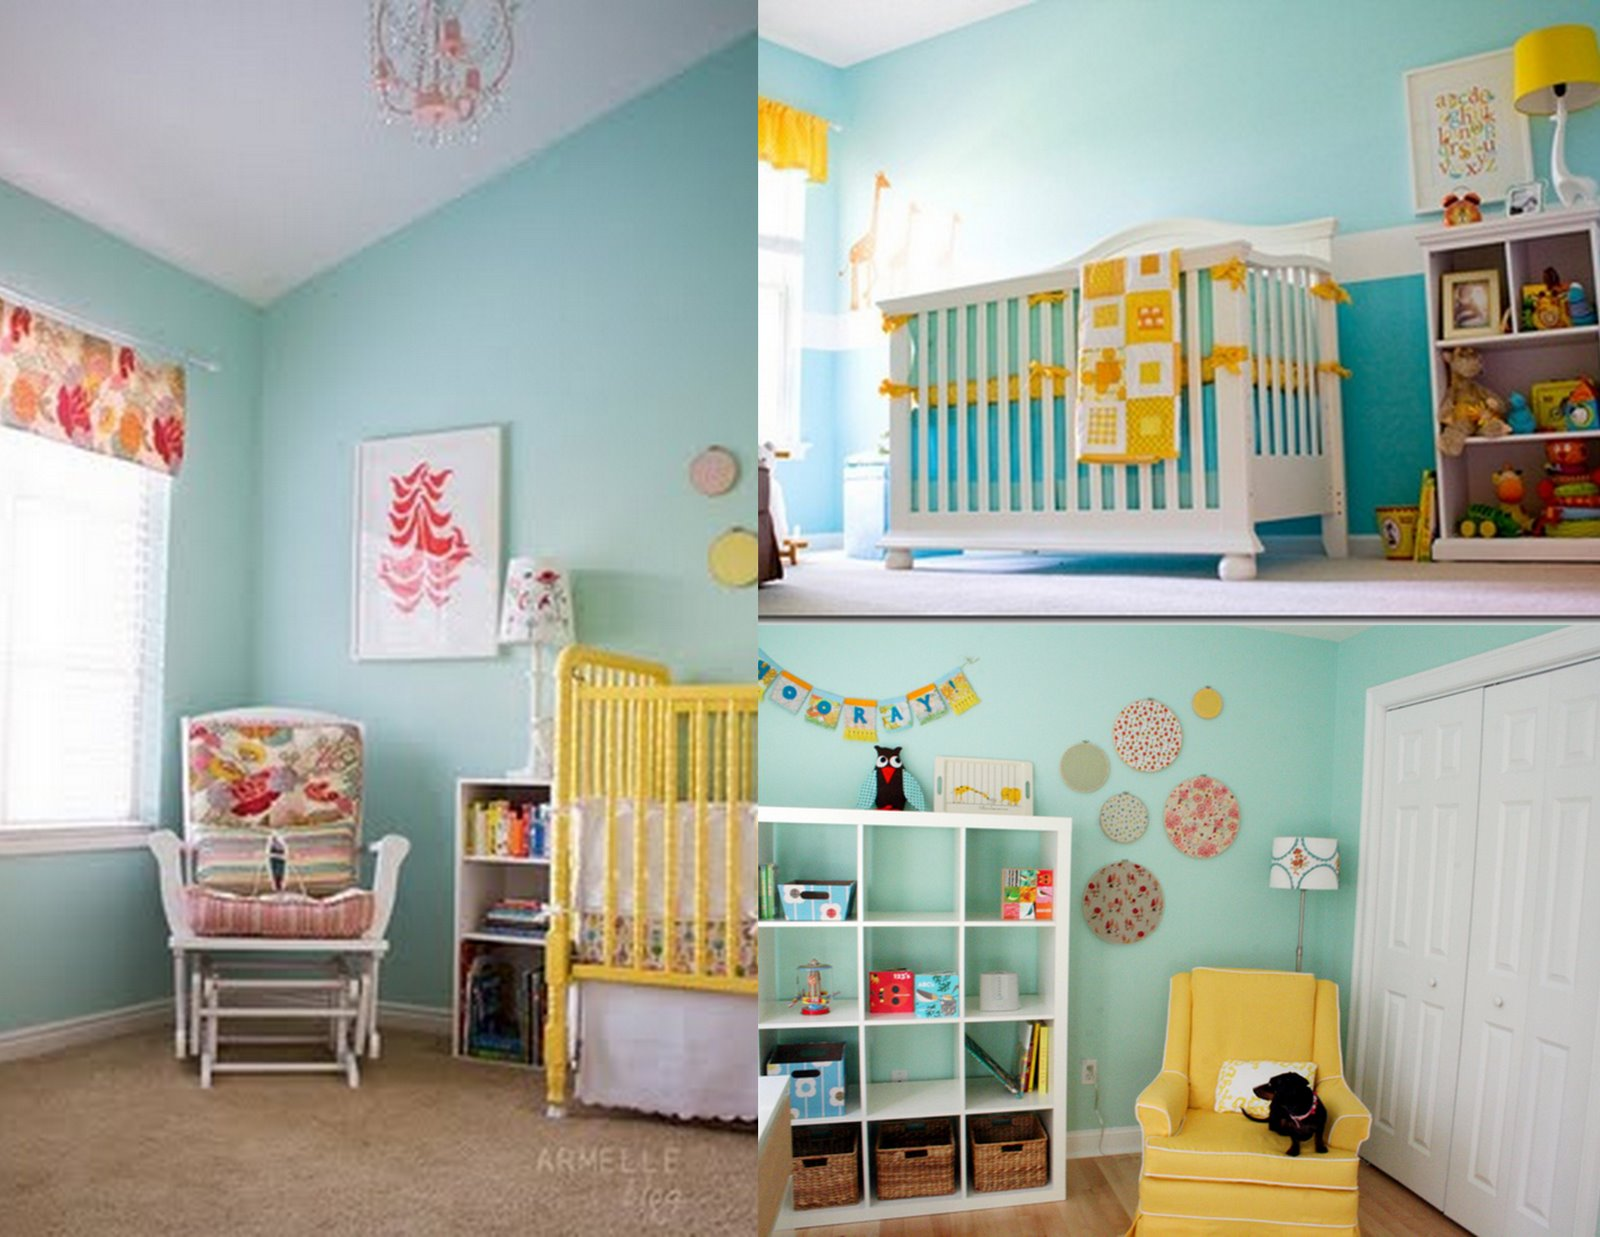 Kathryn Church Designs Nursery Inspirations Teal Aqua and Yellow